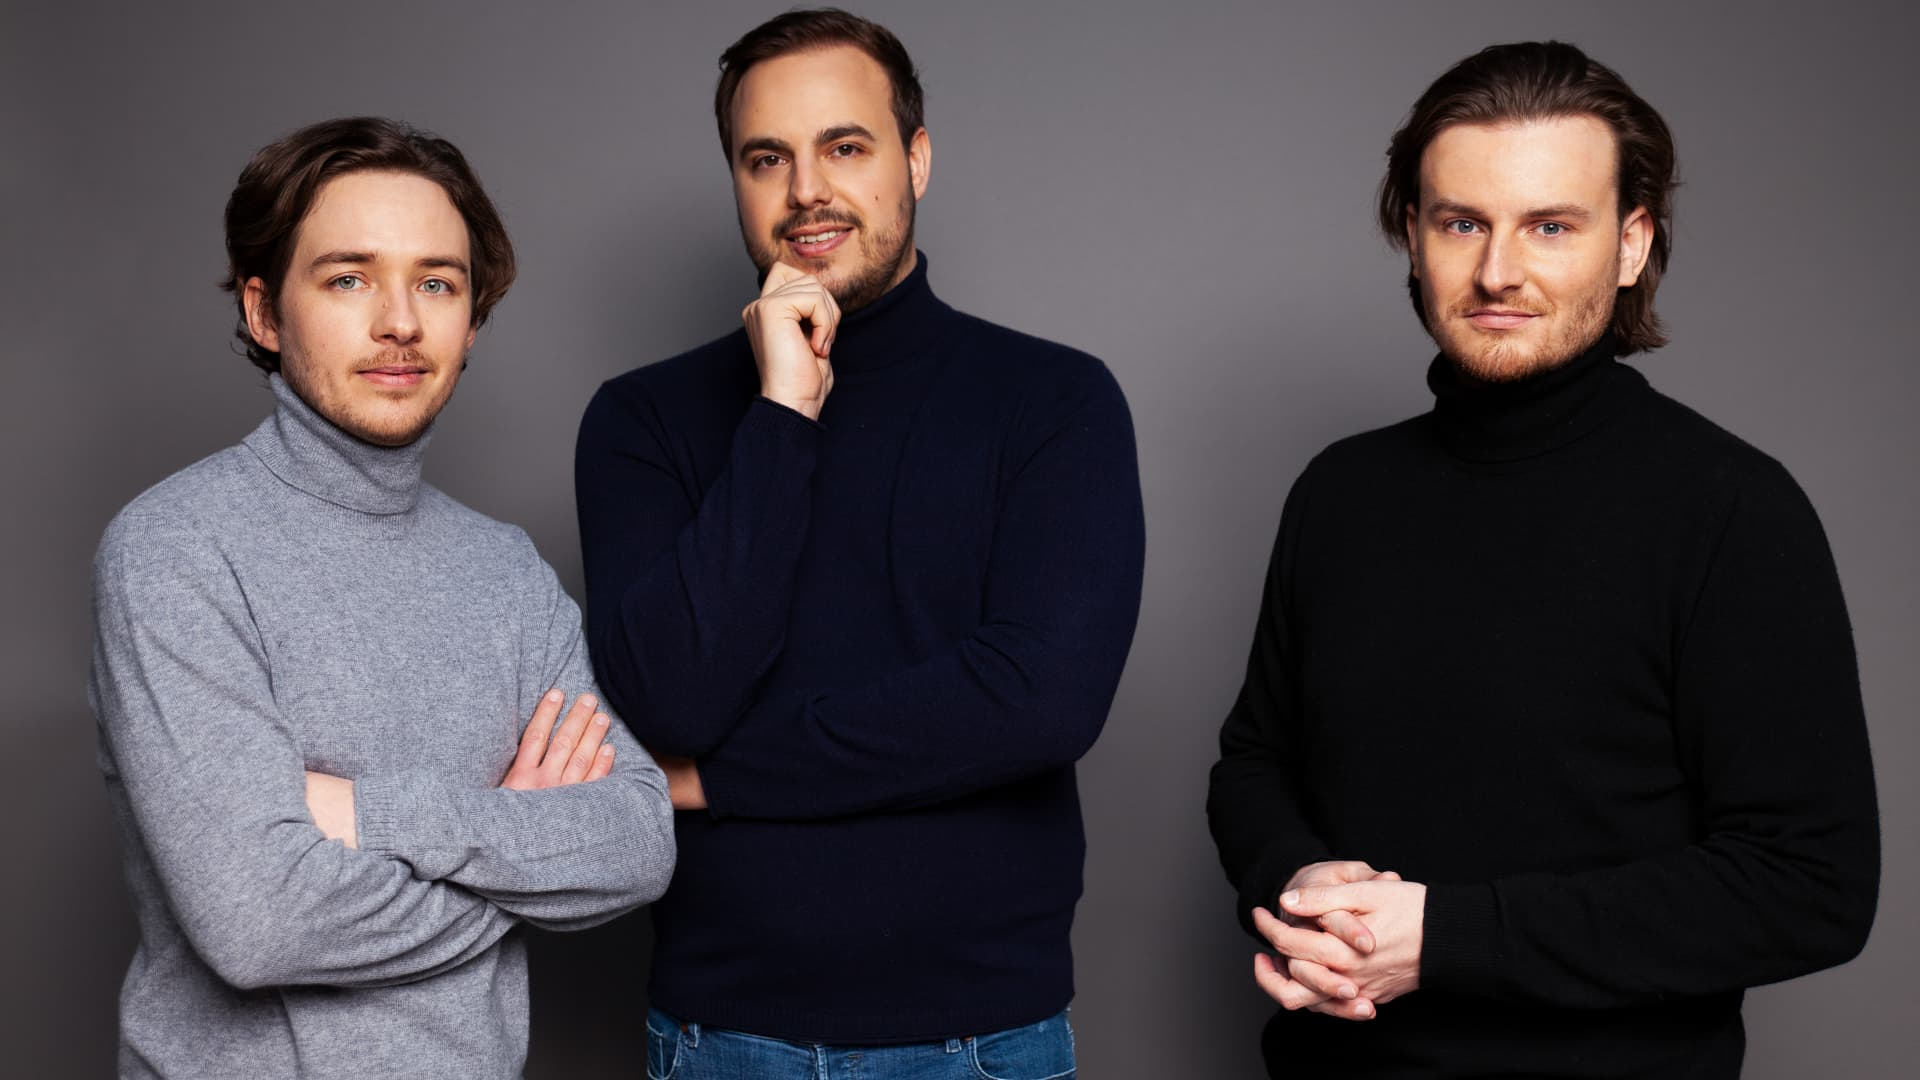 From left to right, Bitpanda co-founders Christian Trummer, Paul Klanschek and Eric Demuth.